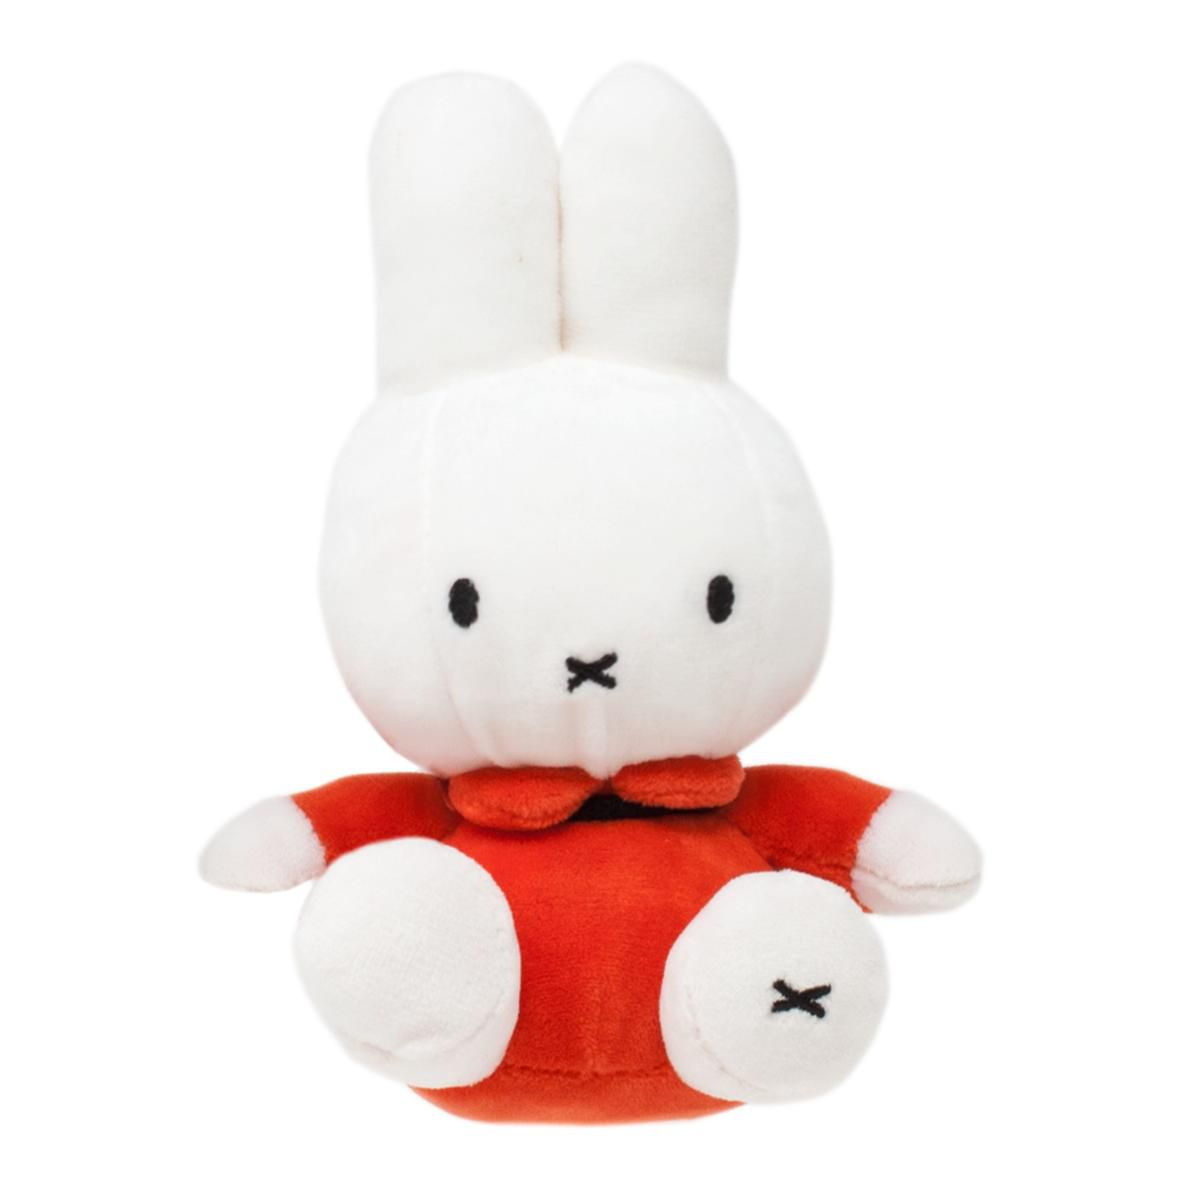 Classic Miffy Soft Toy in Orange Dress by Rainbow Designs MF1457OR